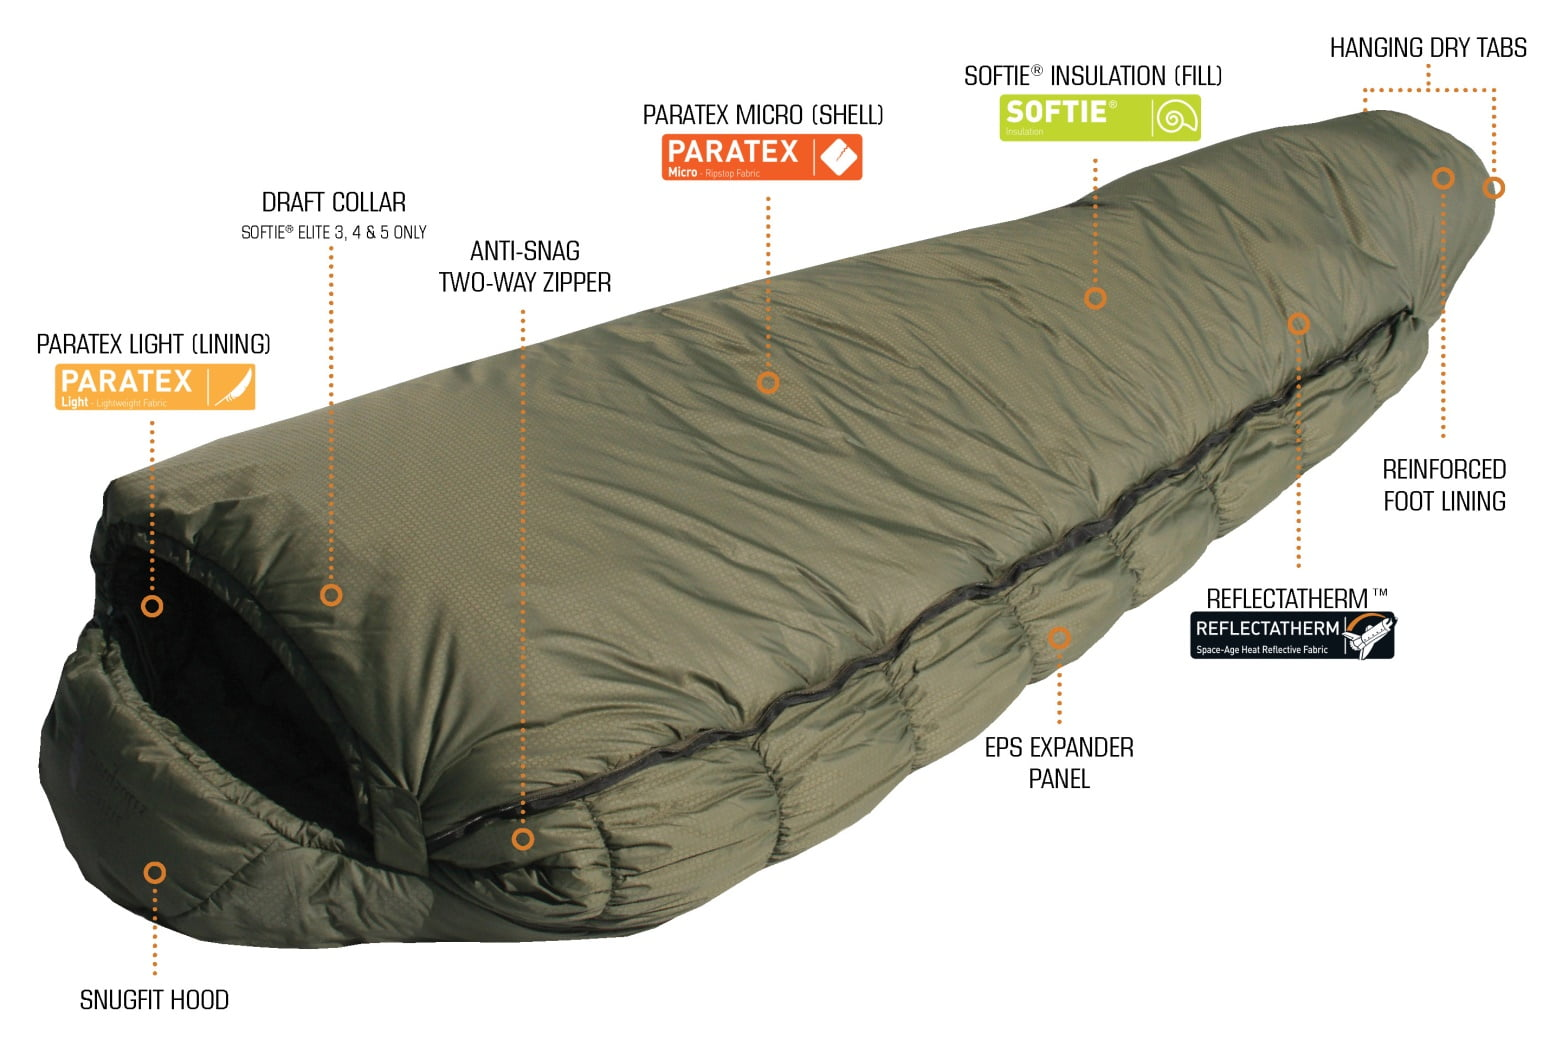 Snugpack Softie Elite 3 Sleeping Bag